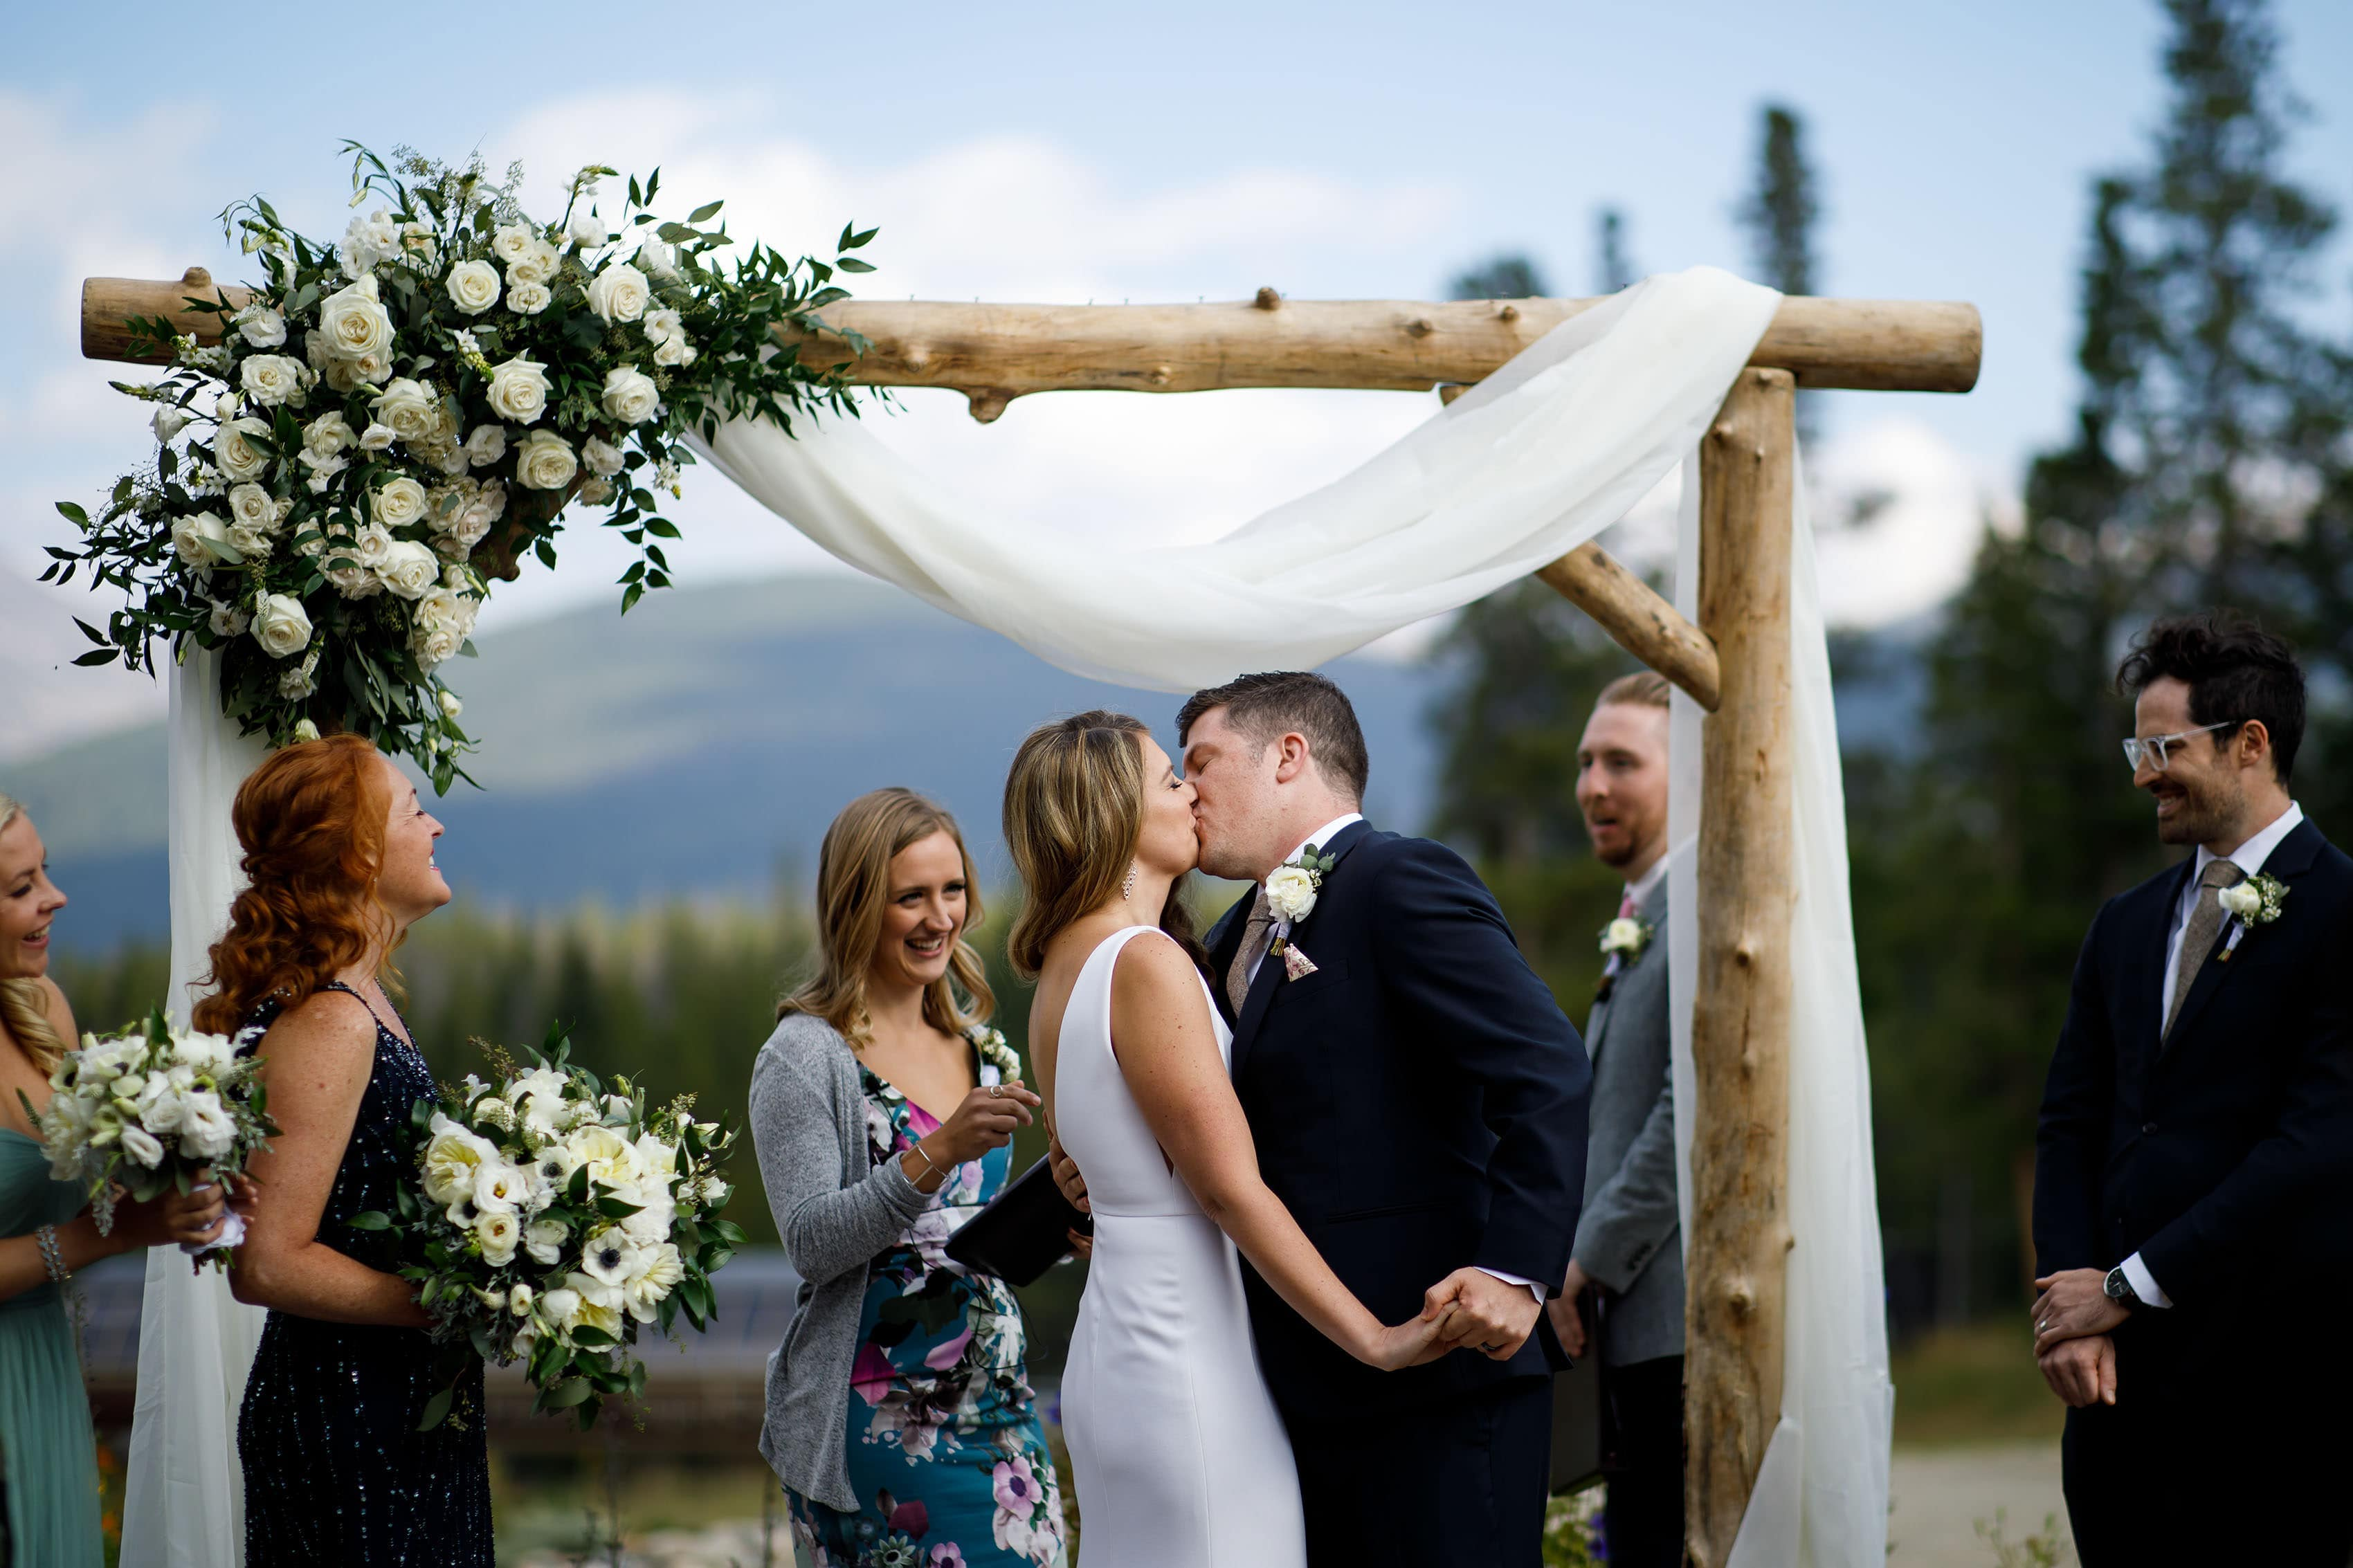 The couple share a first kiss under a wood arch at TenMile